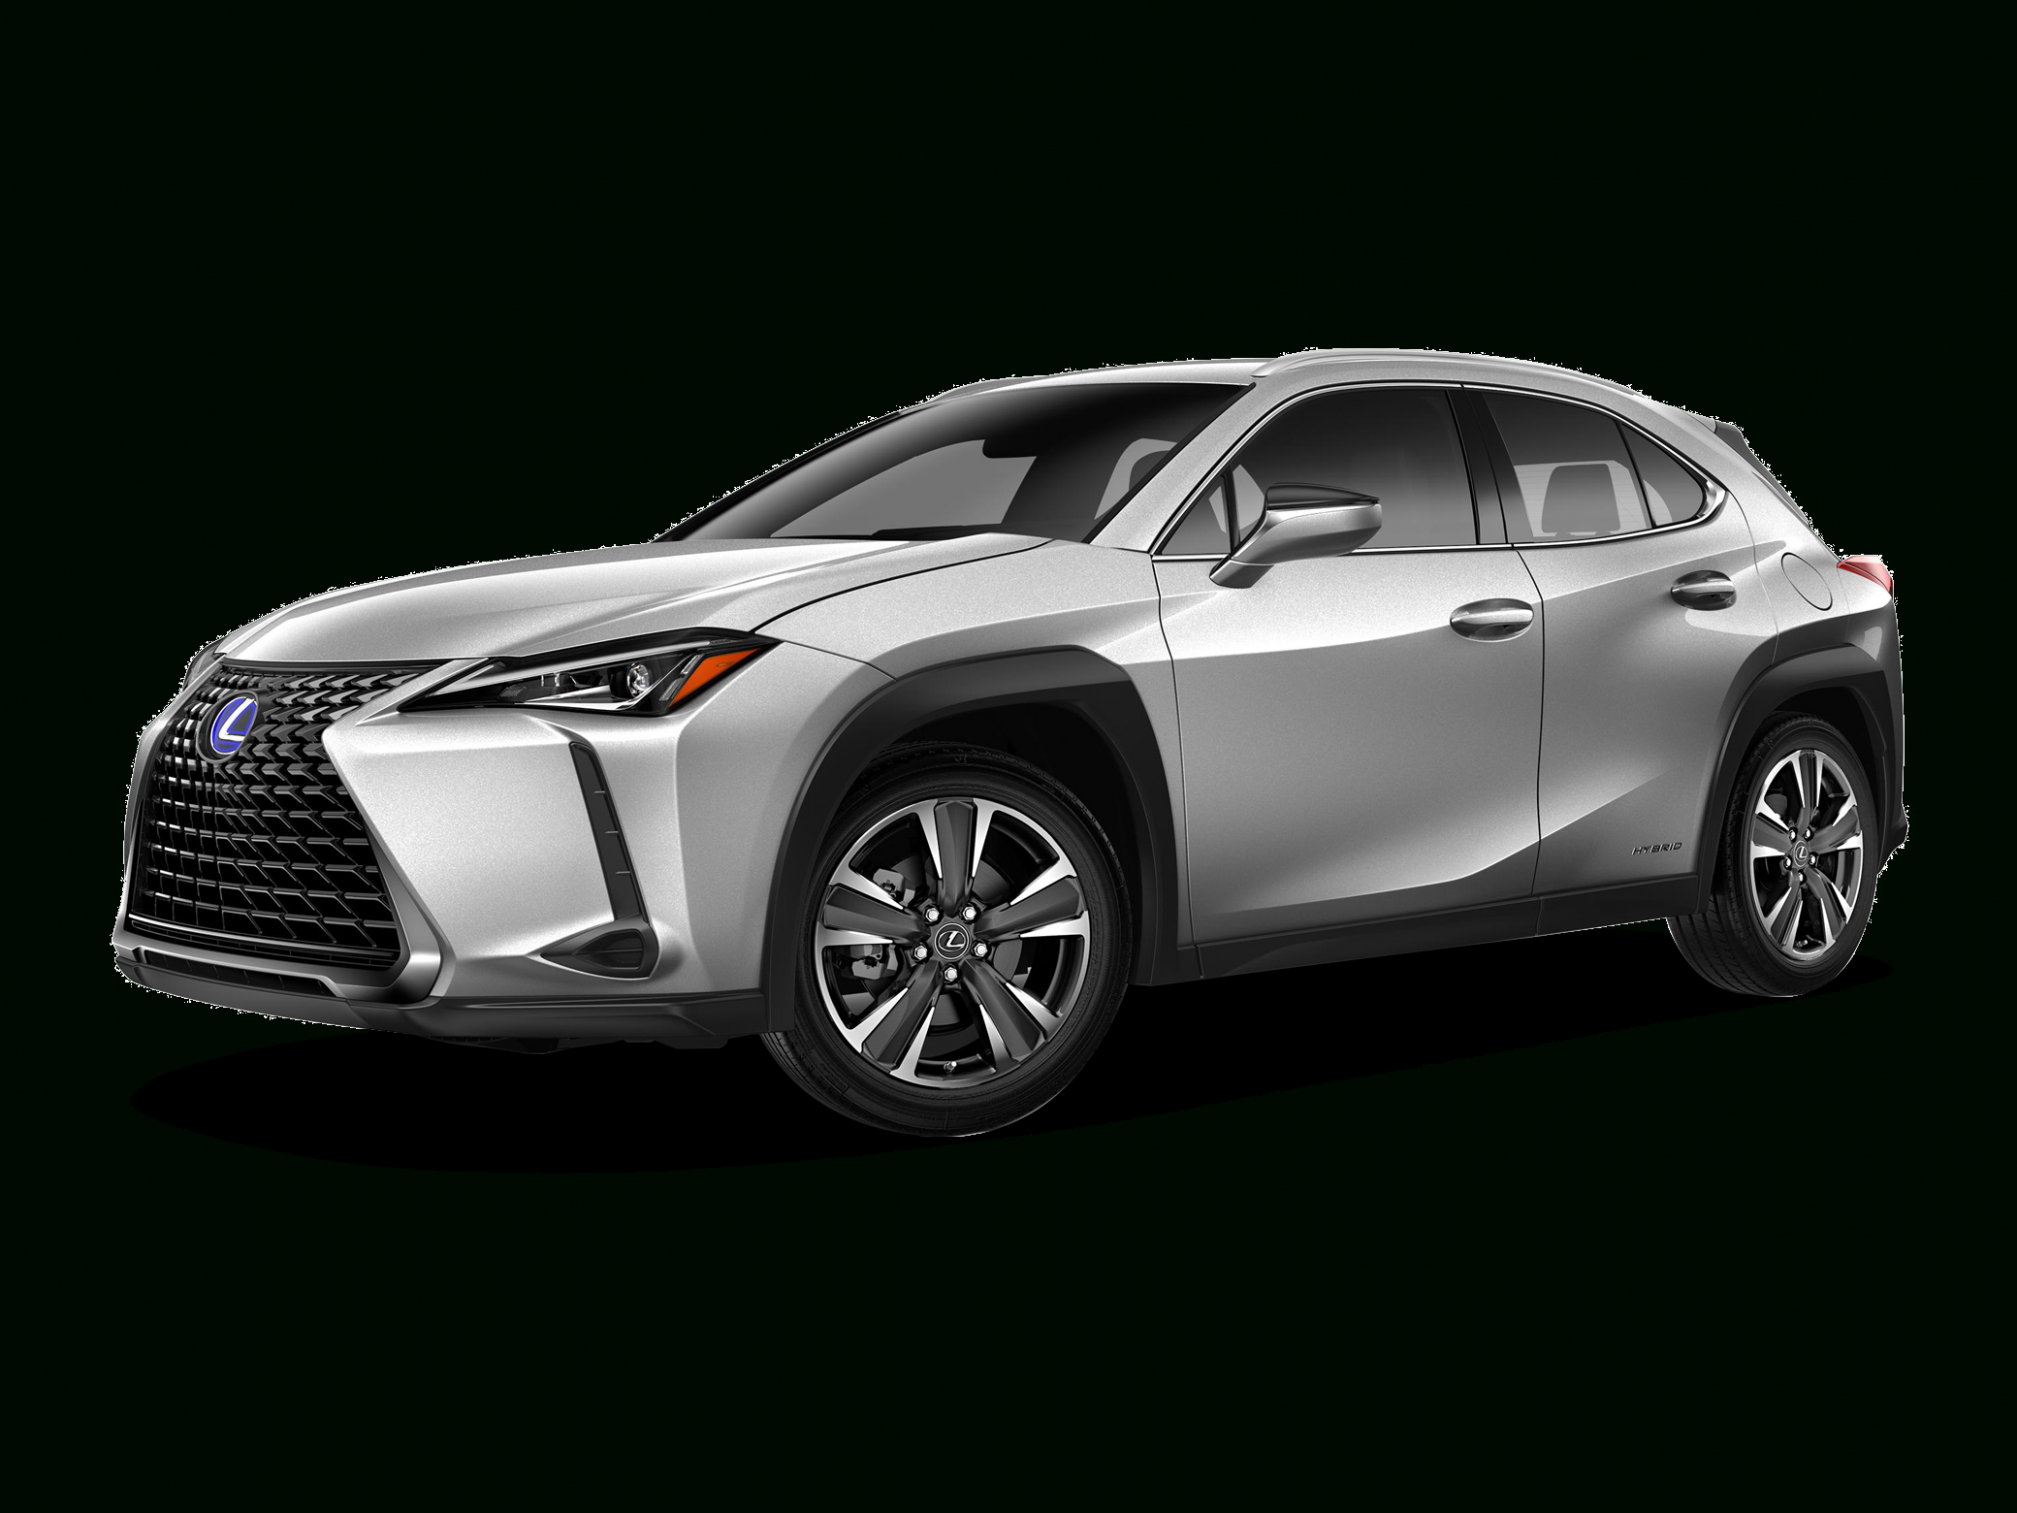 lexus february 8 incentives First Drive 8*8 - lexus ..